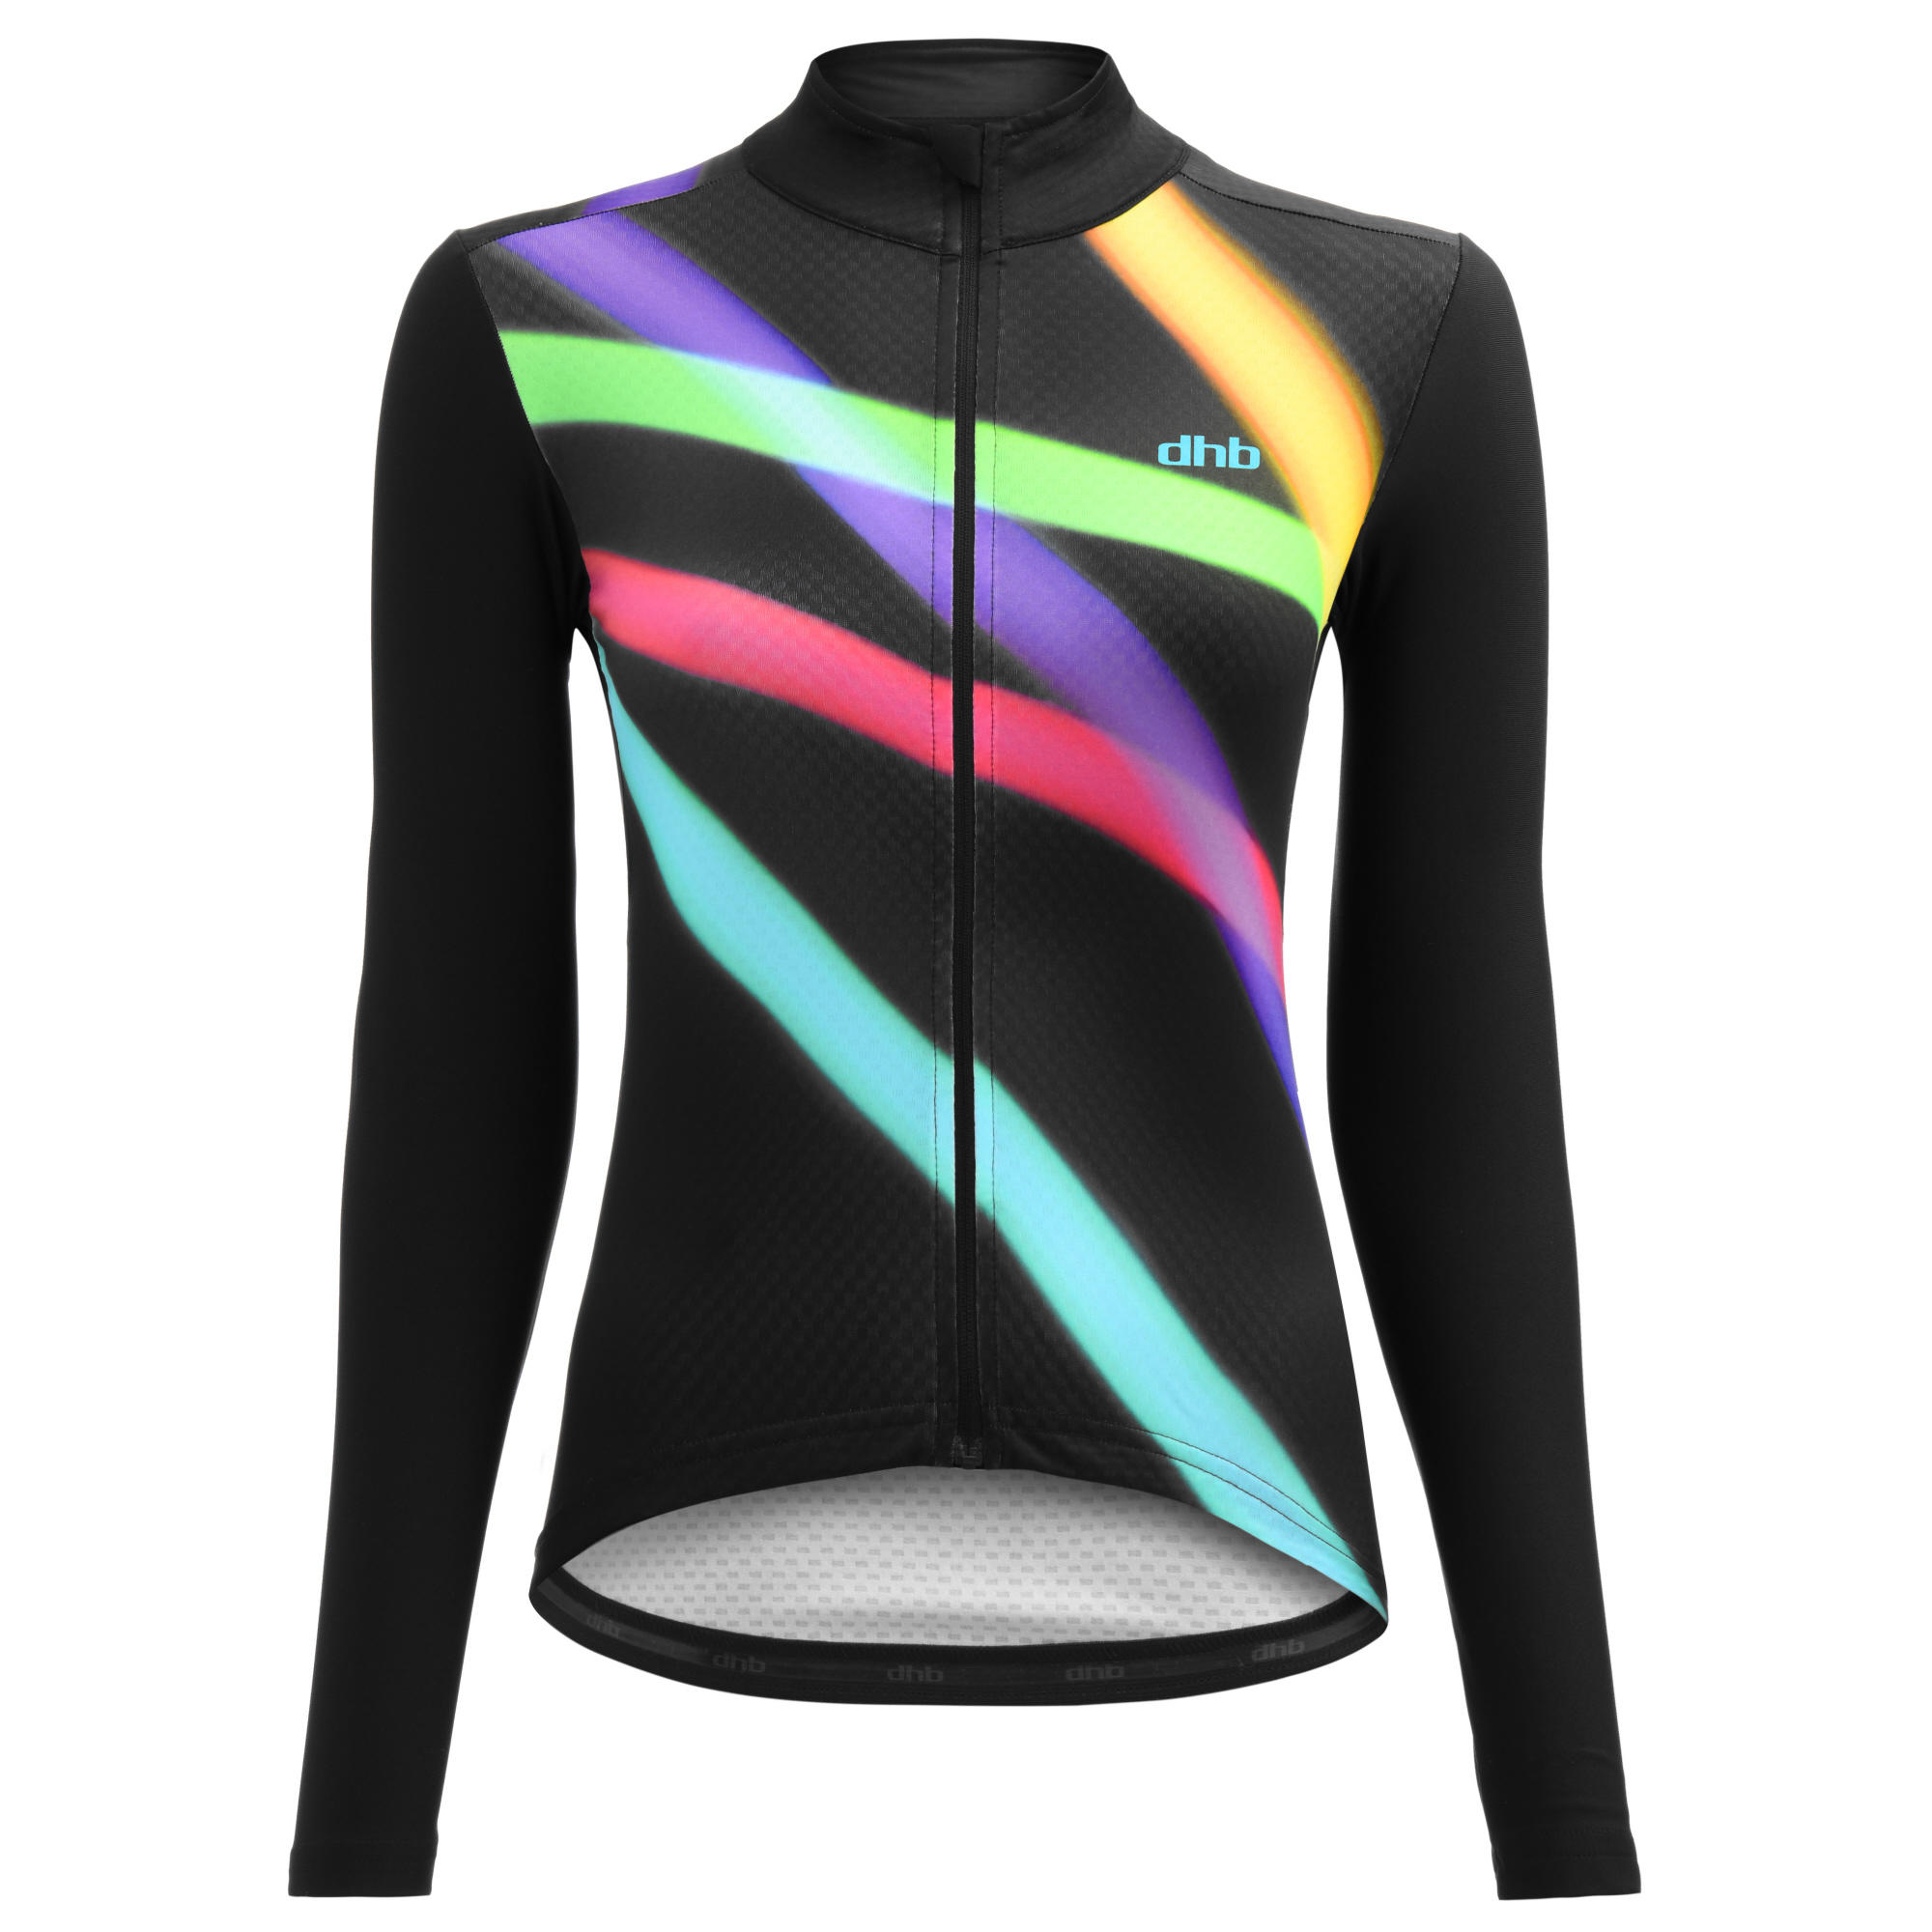 dhb Aeron Womens Speed Equinox Jersey - Amplitude | Jerseys